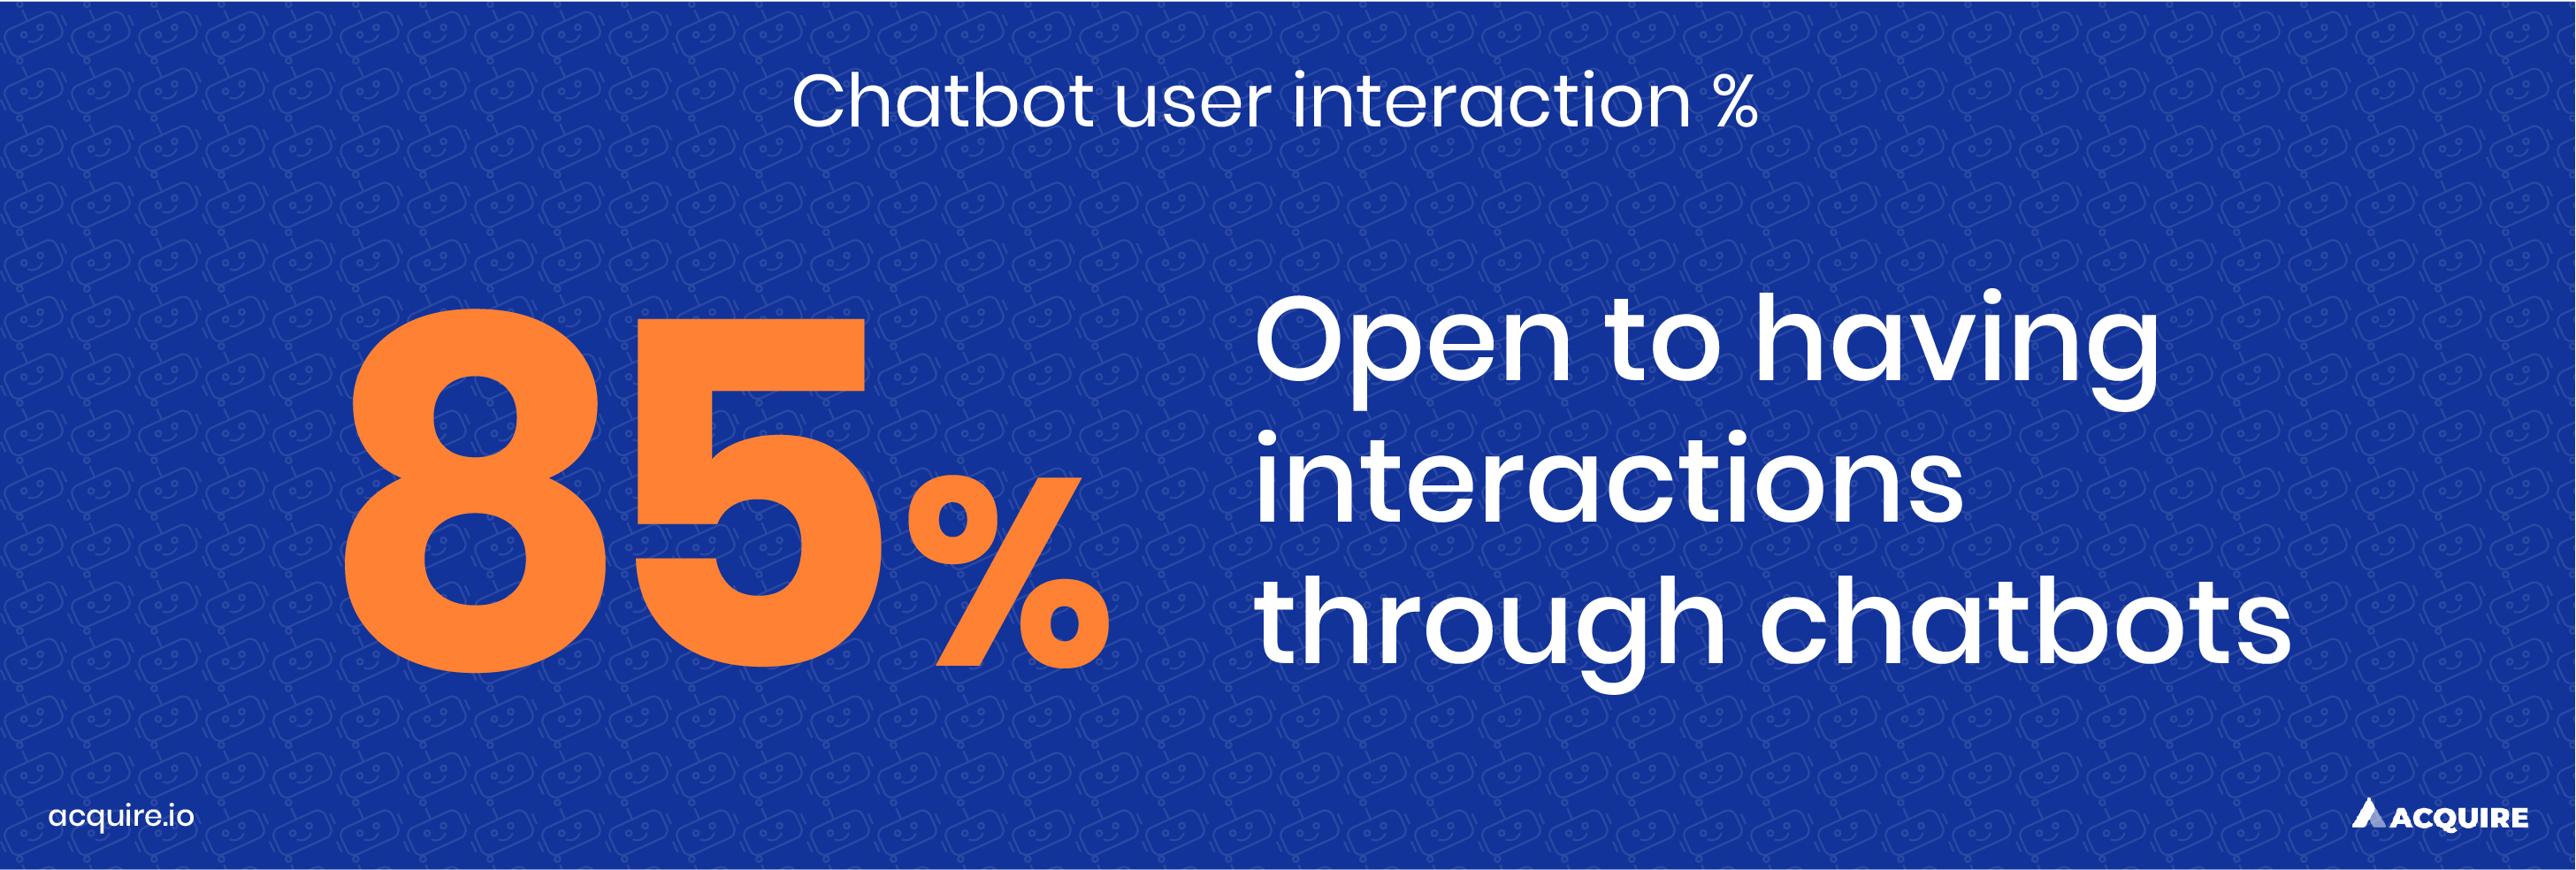 Percent of users who are open to chatbot interactions